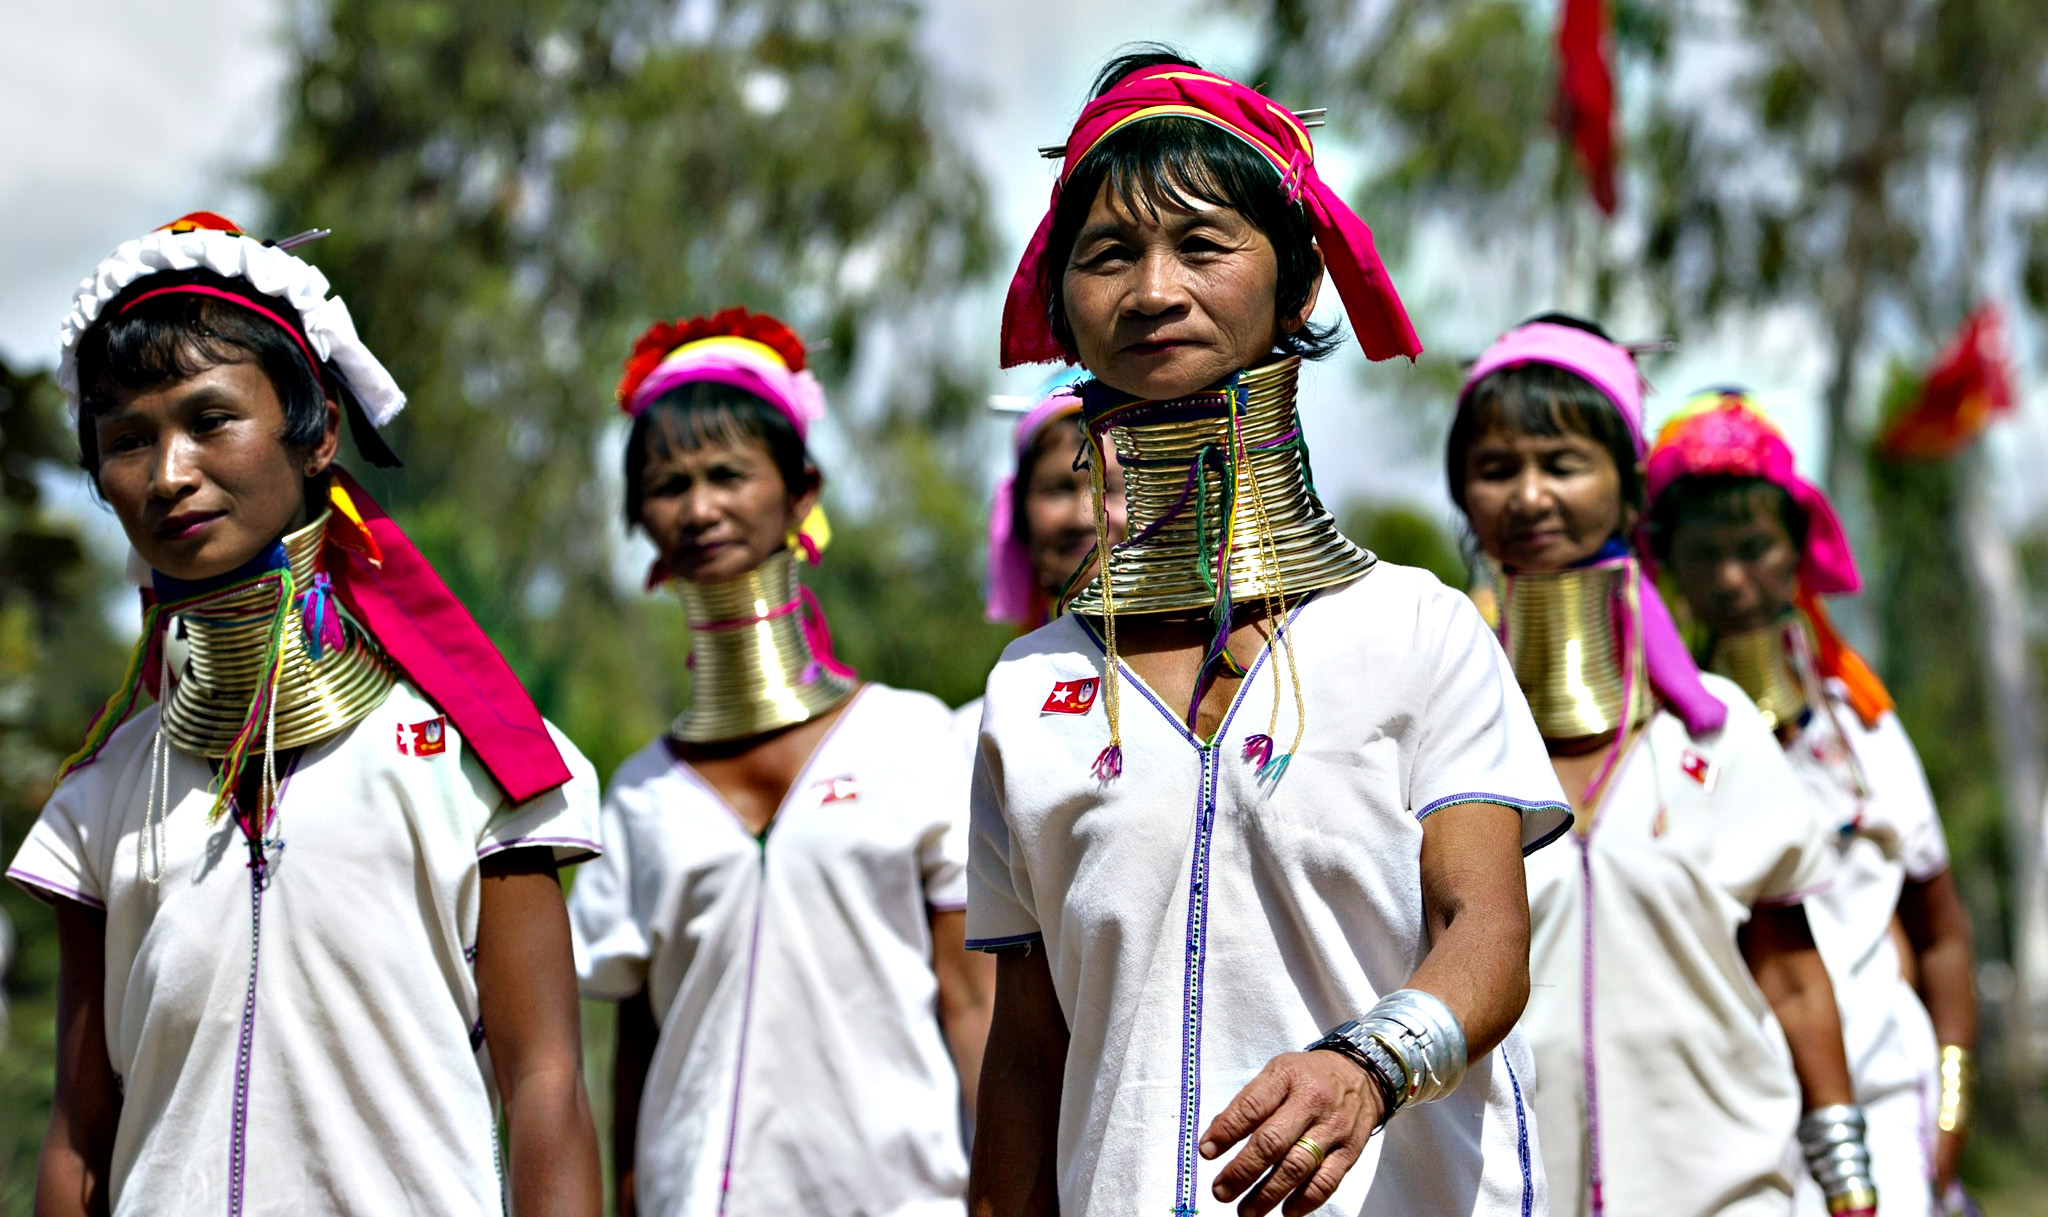 Kayan ethnic women wait for the arrival of National League for Democracy chairperson Aung San Suu Kyi during an election campaign rally in Demoso, Myanmar's Kayah State on Thursday